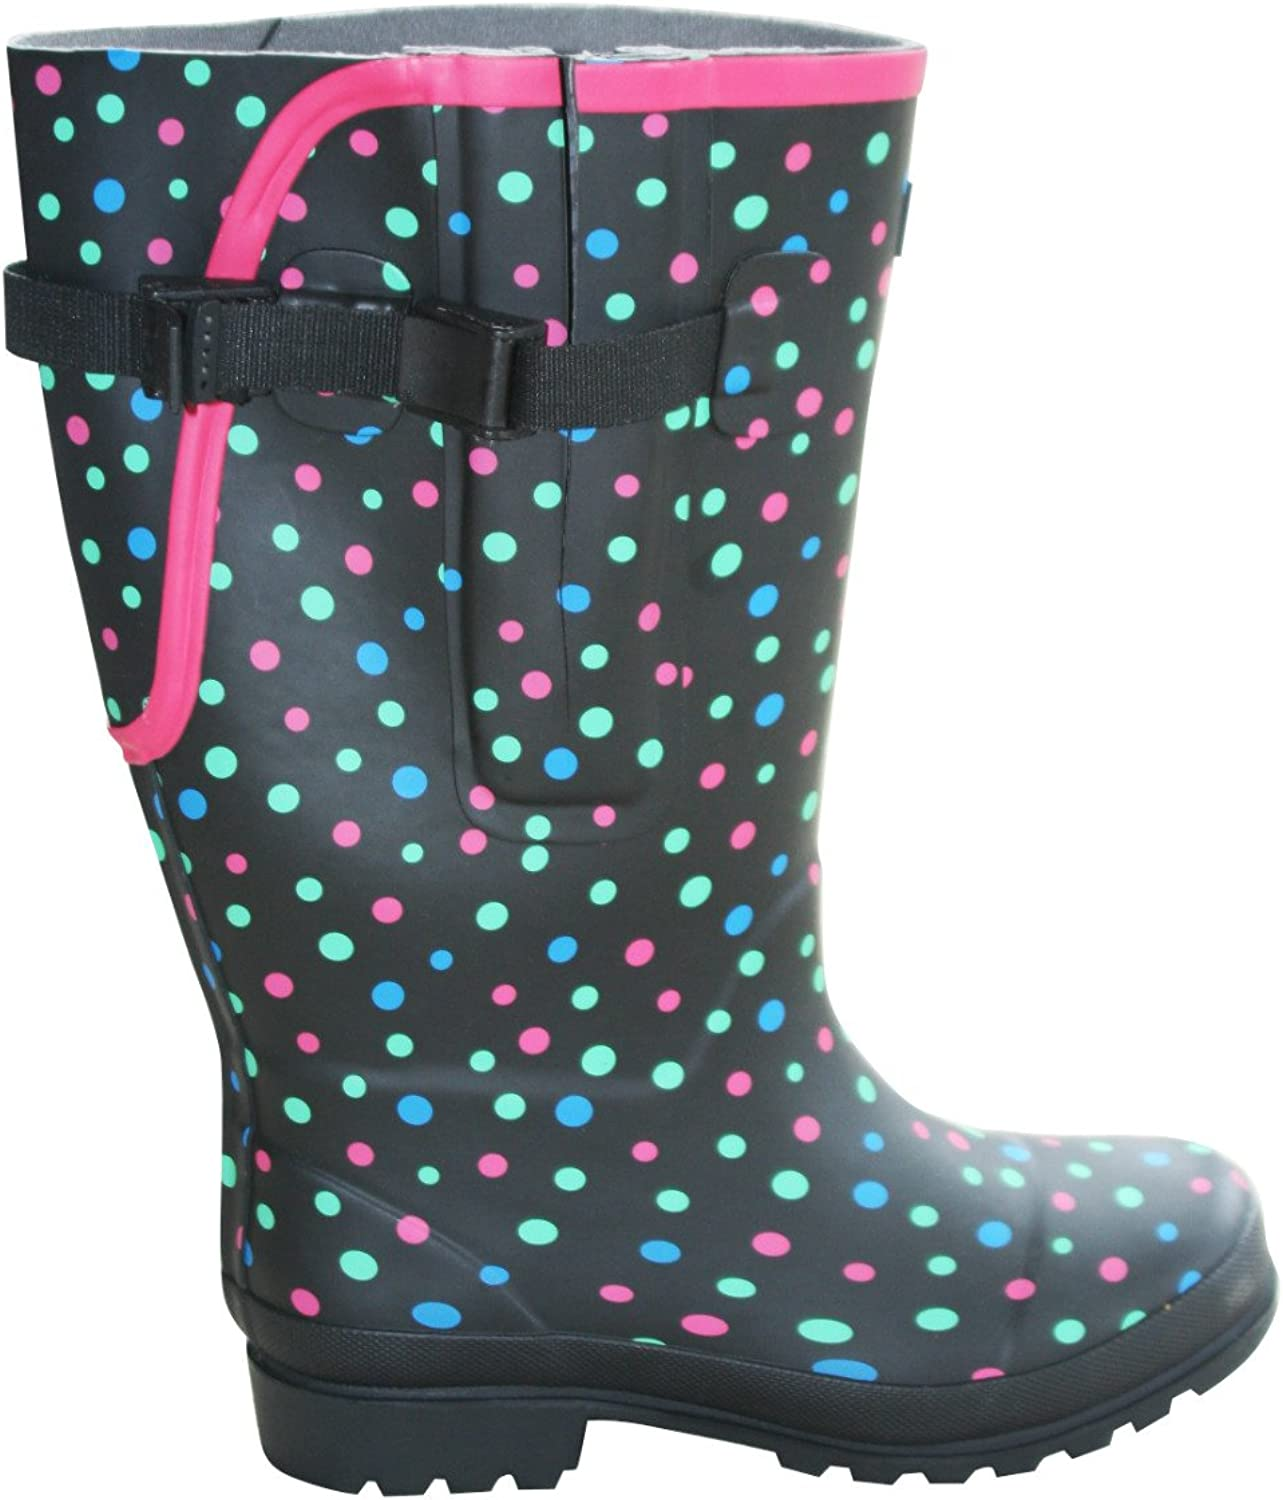 Jileon Extra Wide Calf Rubber Rain Boots with Rear Expansion - Wide in Calf, Foot and Ankle